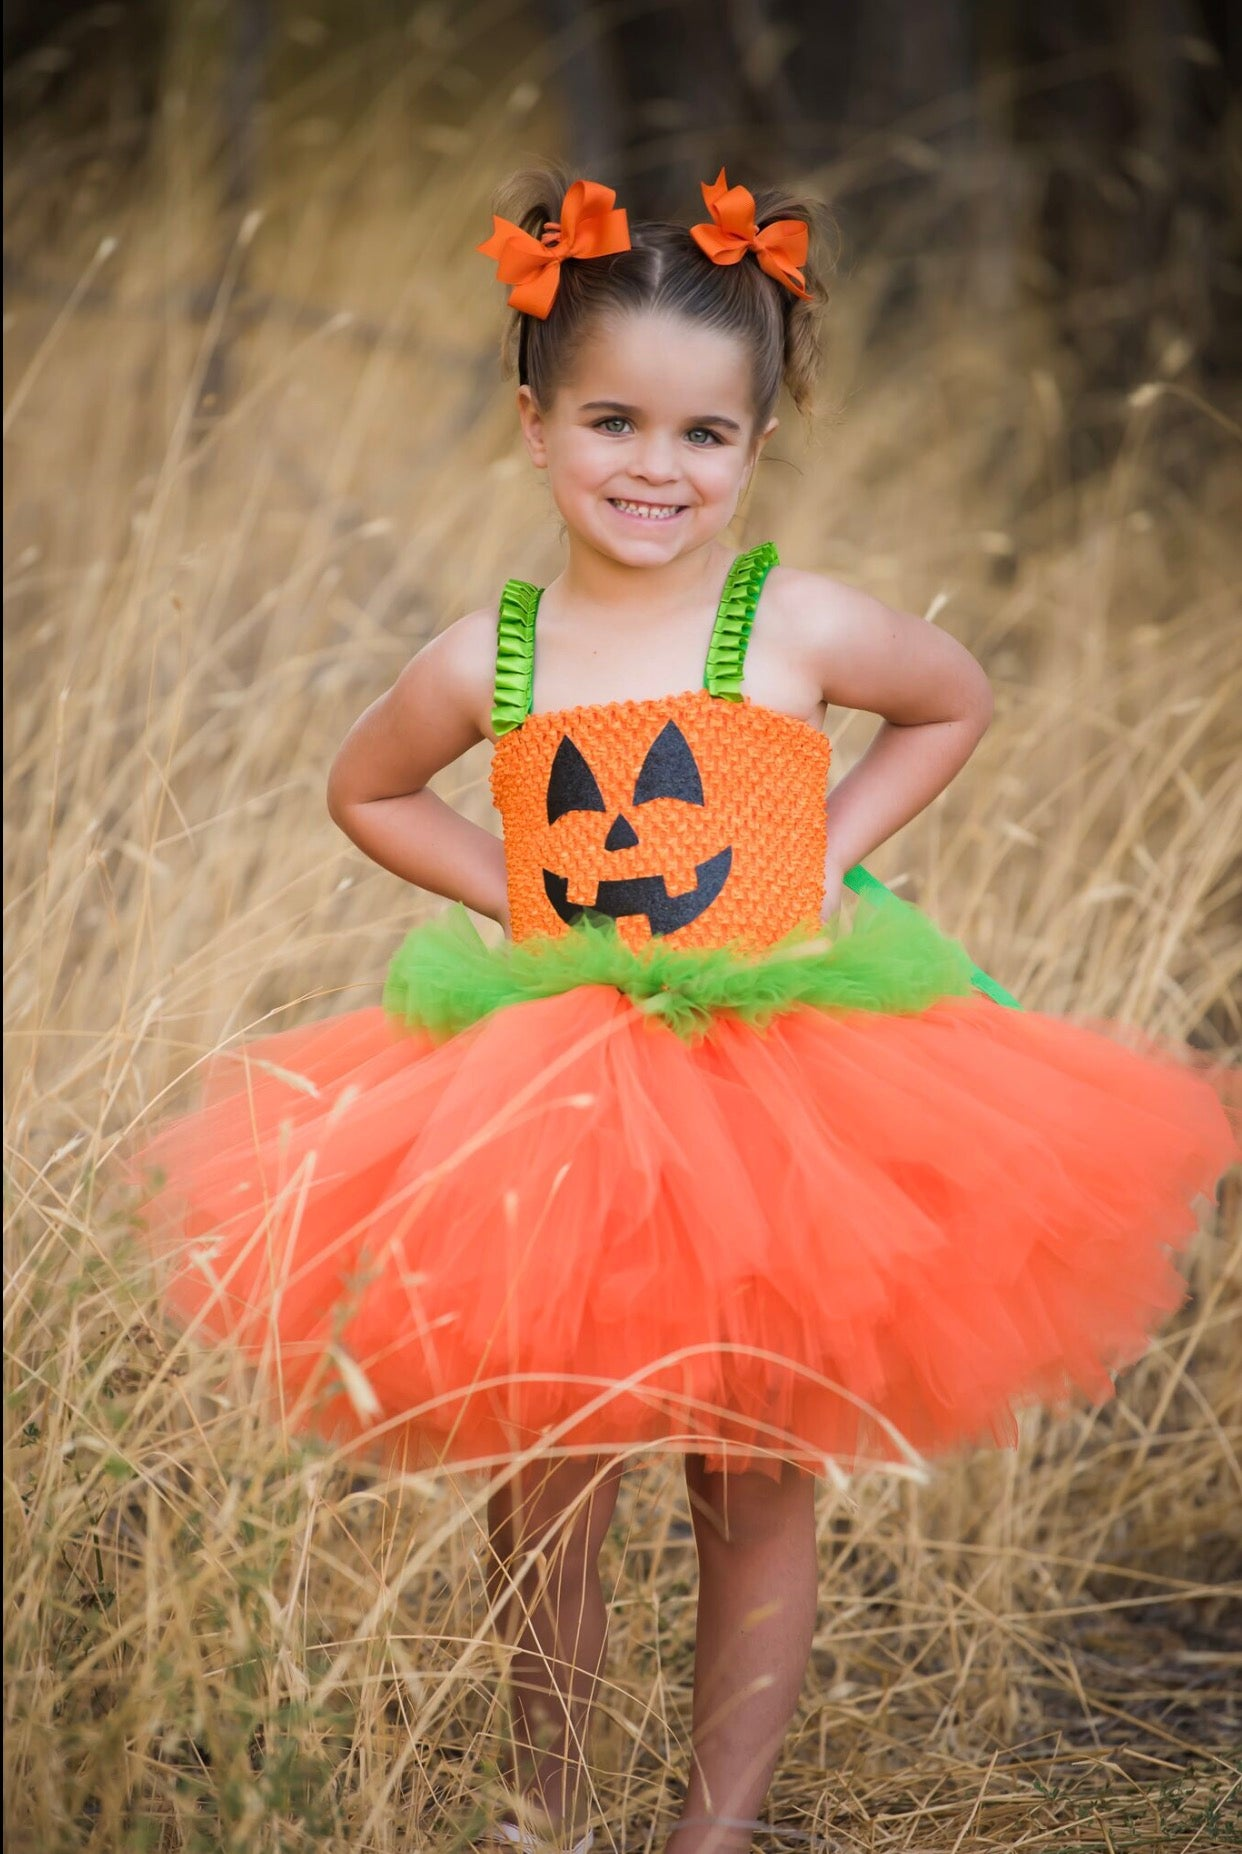 Pumpkin Tutu Girls Pumpkin Costume Pumpkin Dress Pumpkin Halloween Costume  sc 1 st  Little Ladybug Tutus & Pumpkin Tutu Girls Pumpkin Costume Pumpkin Dress Pumpkin ...